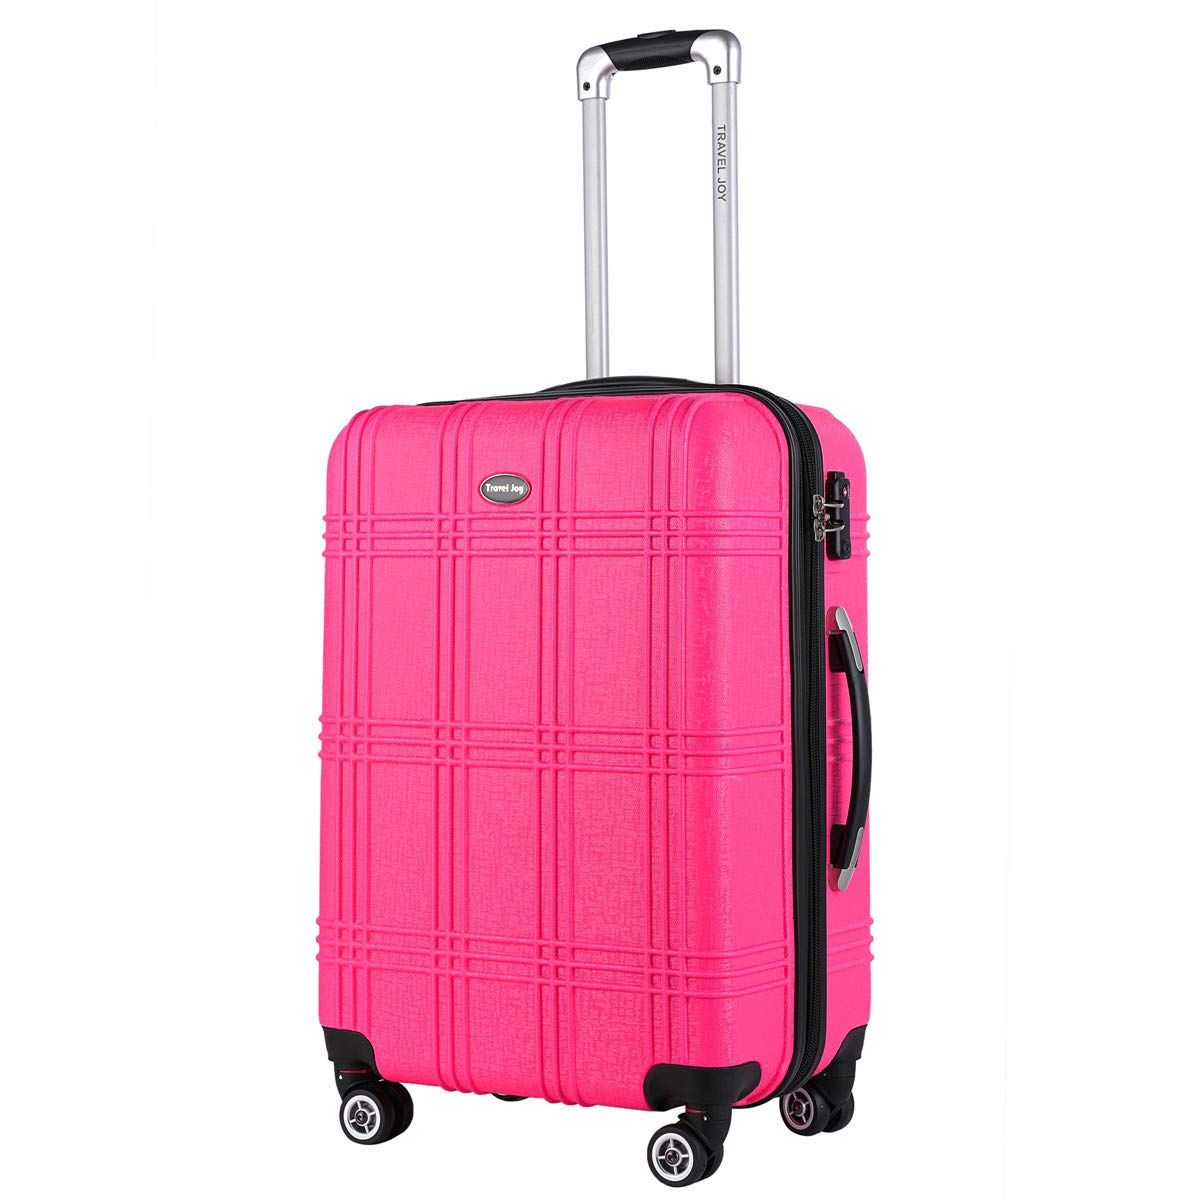 Expandable Spinner Luggage Set,TSA lightweight Hardside Luggage Sets, 20'' 24''28 inches Luggage (HOT PINK-1, 20 inches)